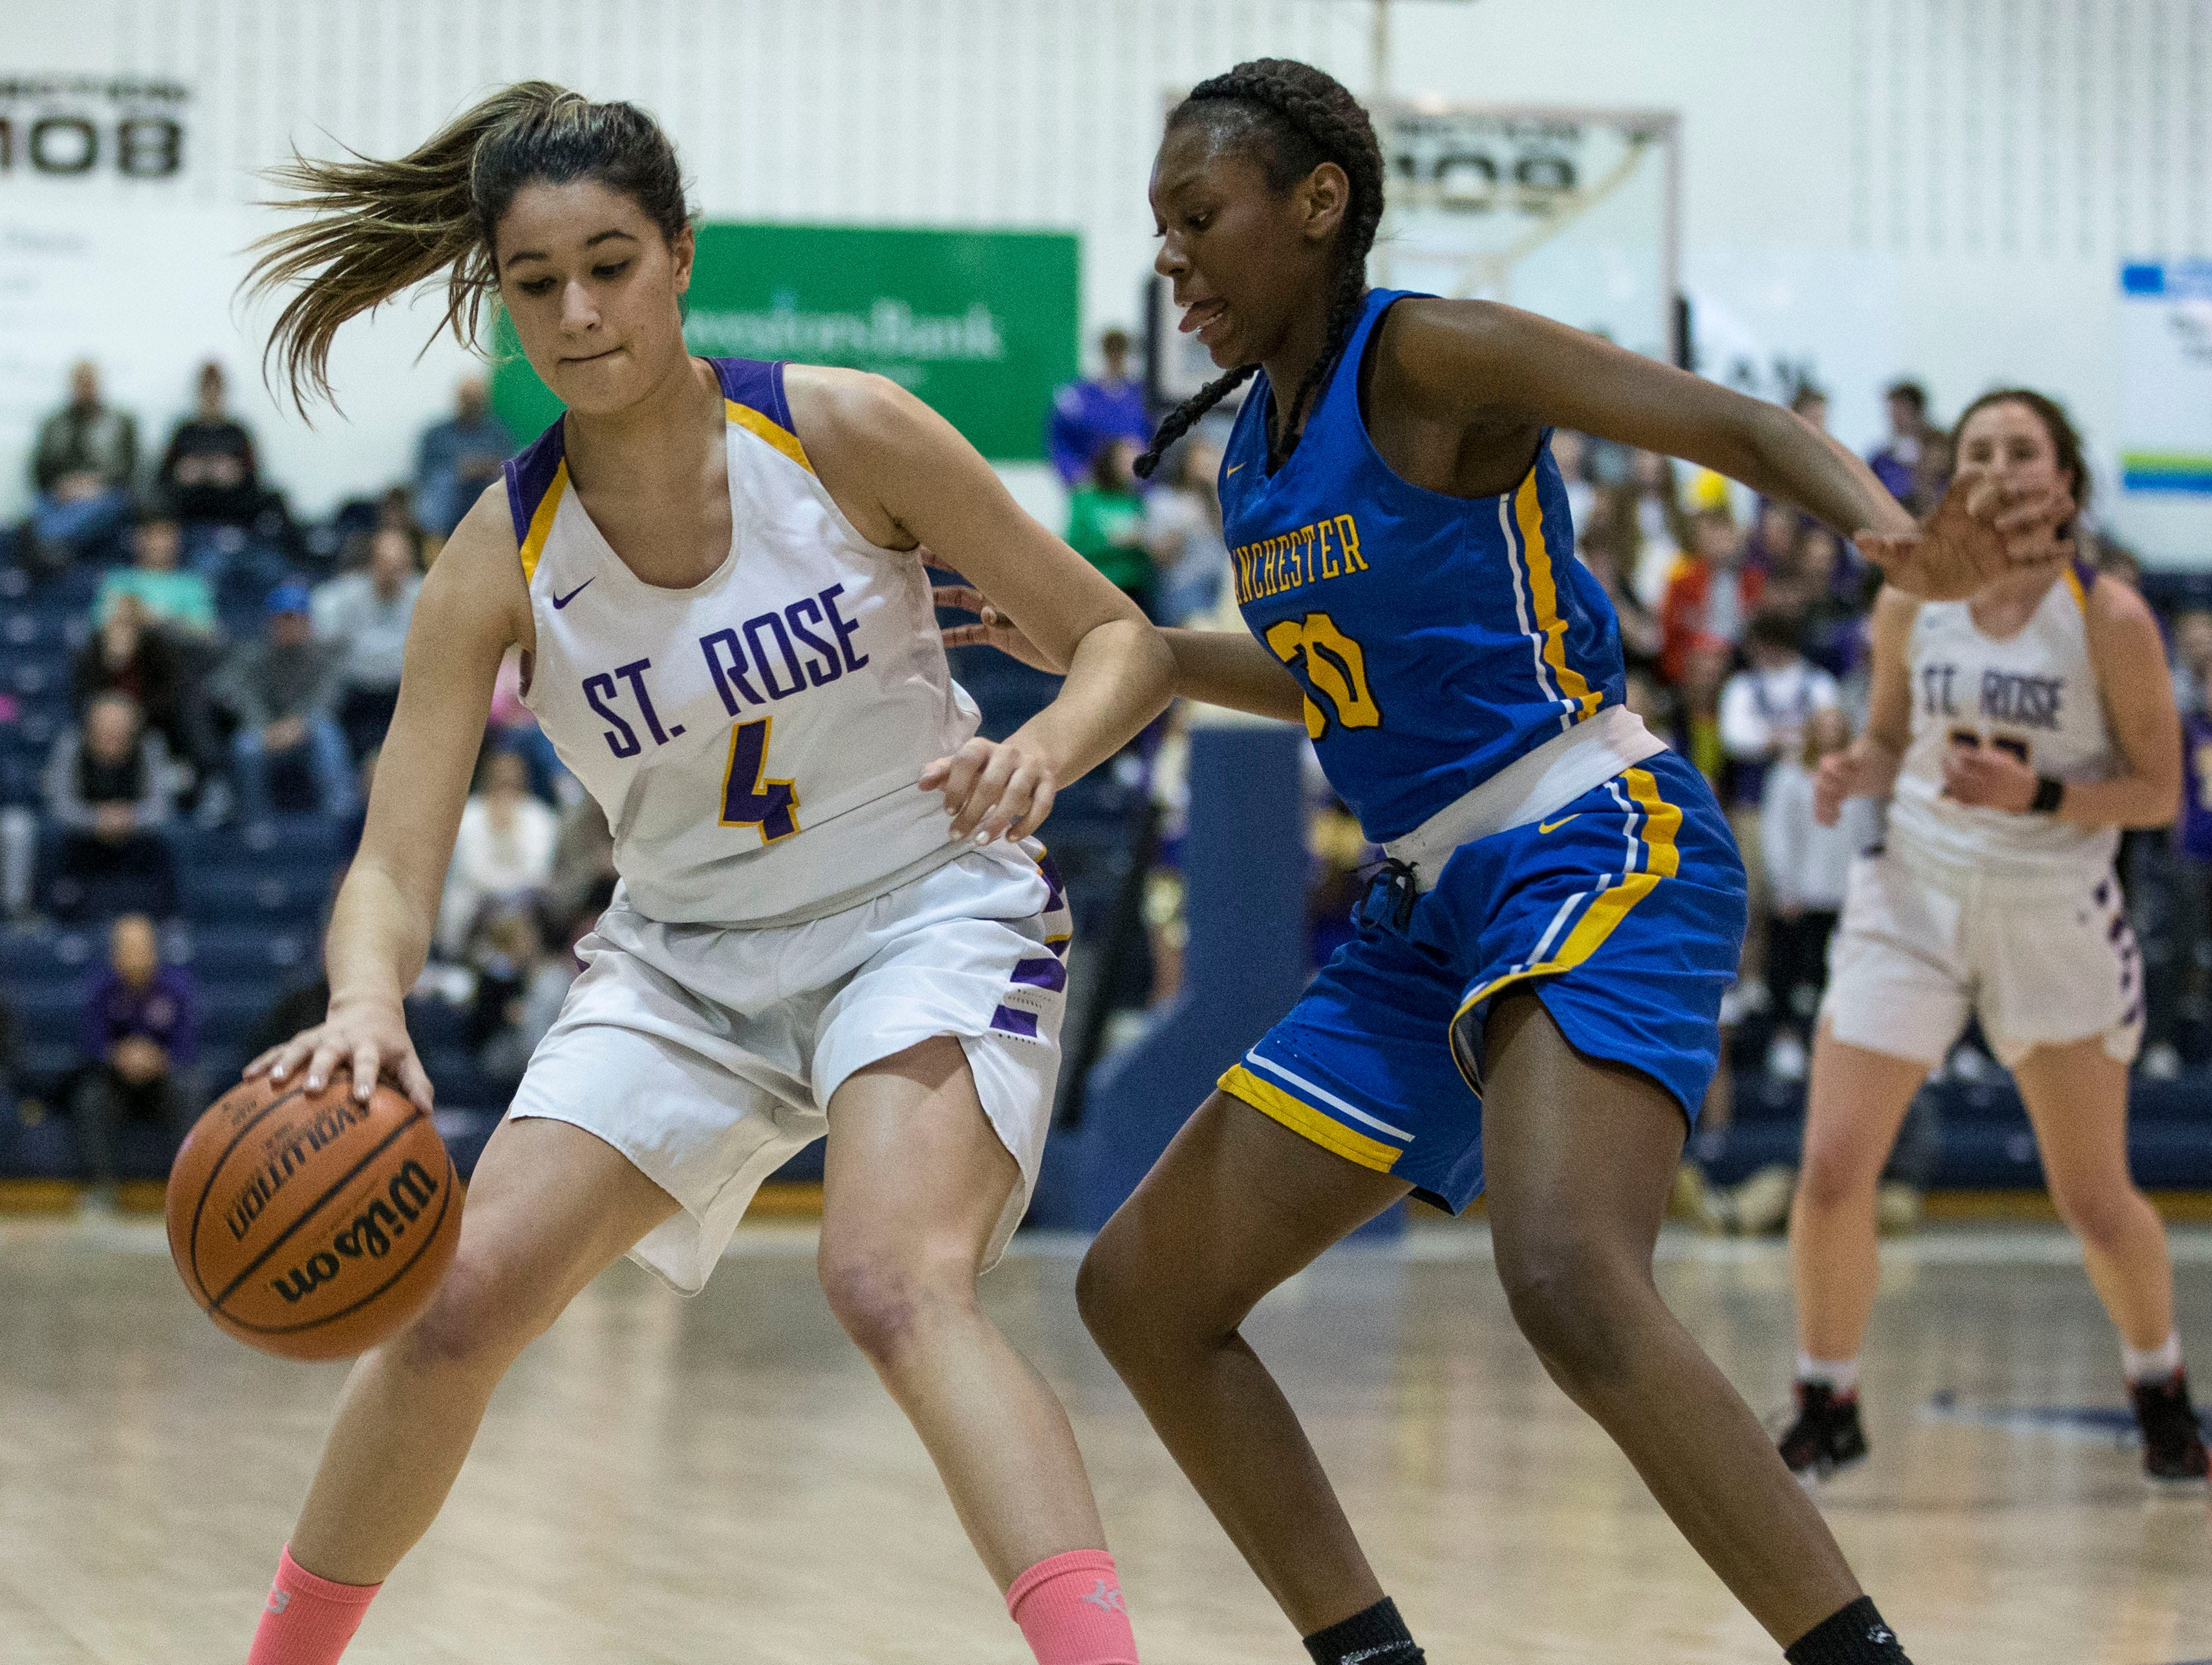 Shore Conference Tournament semifinals featuring St. Rose vs Manchester. St. Rose's Sam Mikos looks to get by Manchester's Serentity Anderson. Toms River, NJTuesday, February 19, 2019